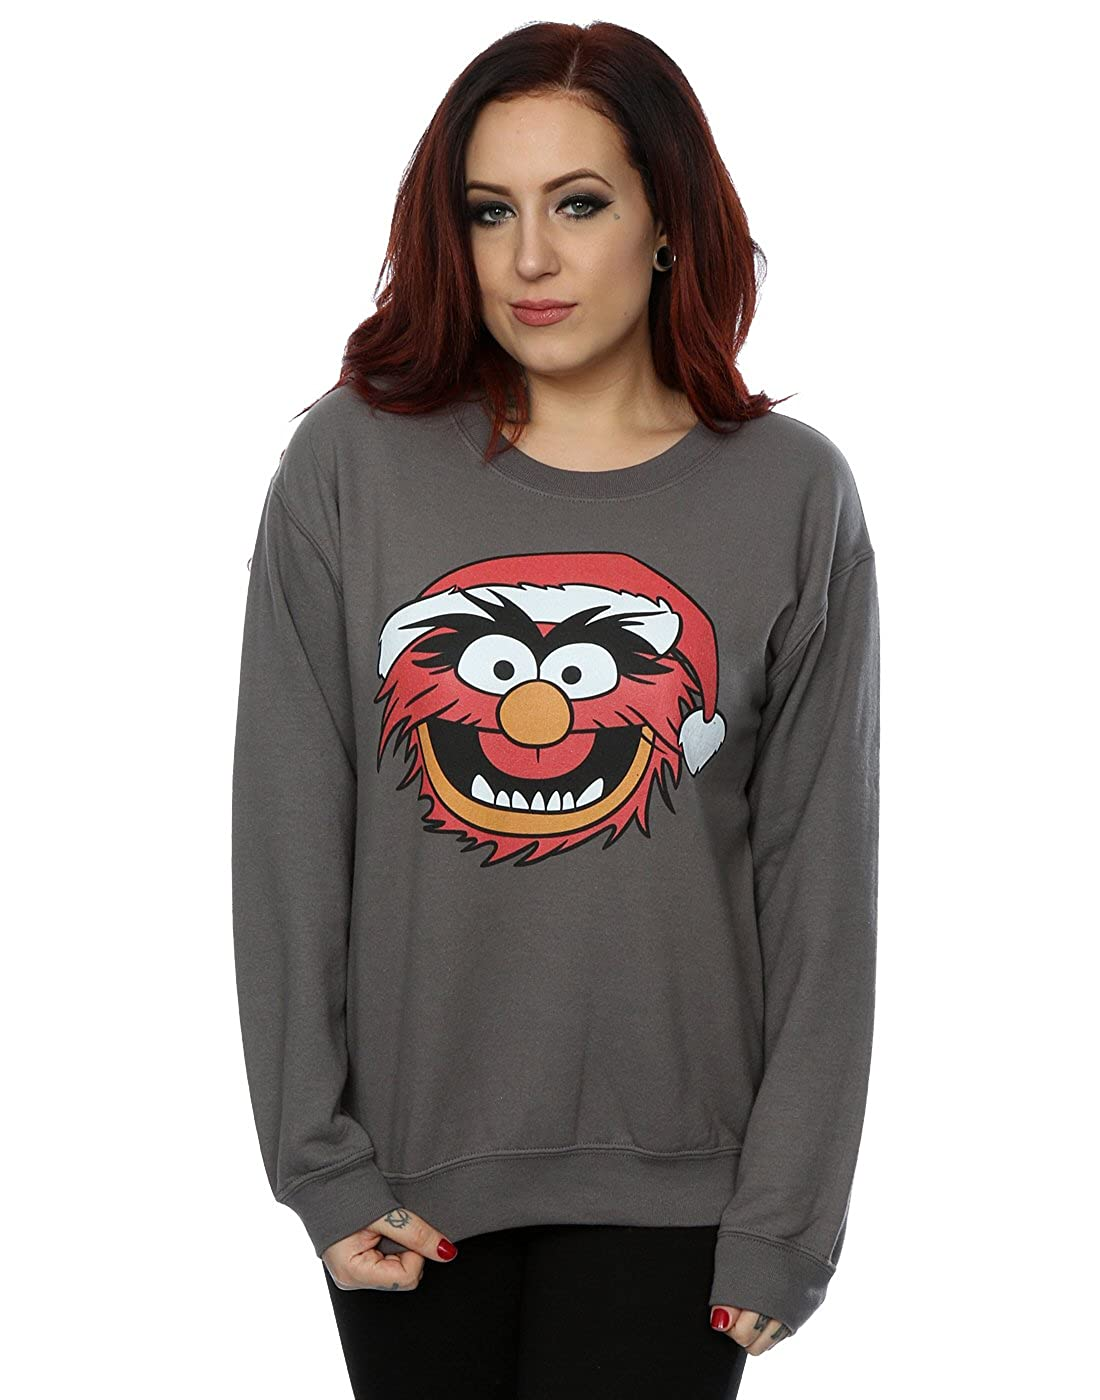 Disney Women's The Muppets Animal Christmas Sweatshirt Absolute Cult